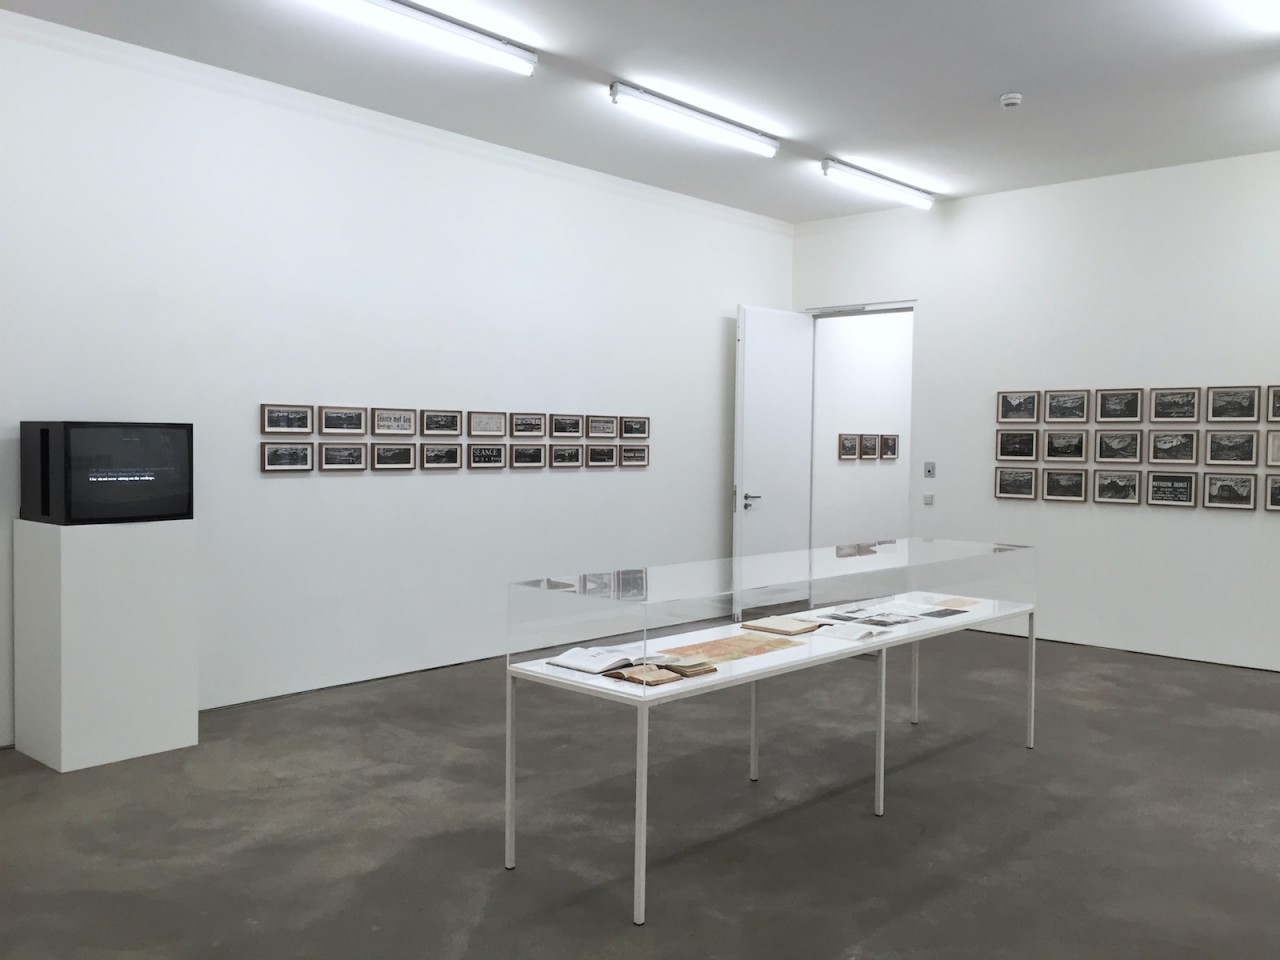 The Symmetry Argument 2015 @ Sprüth Magers, Berlin